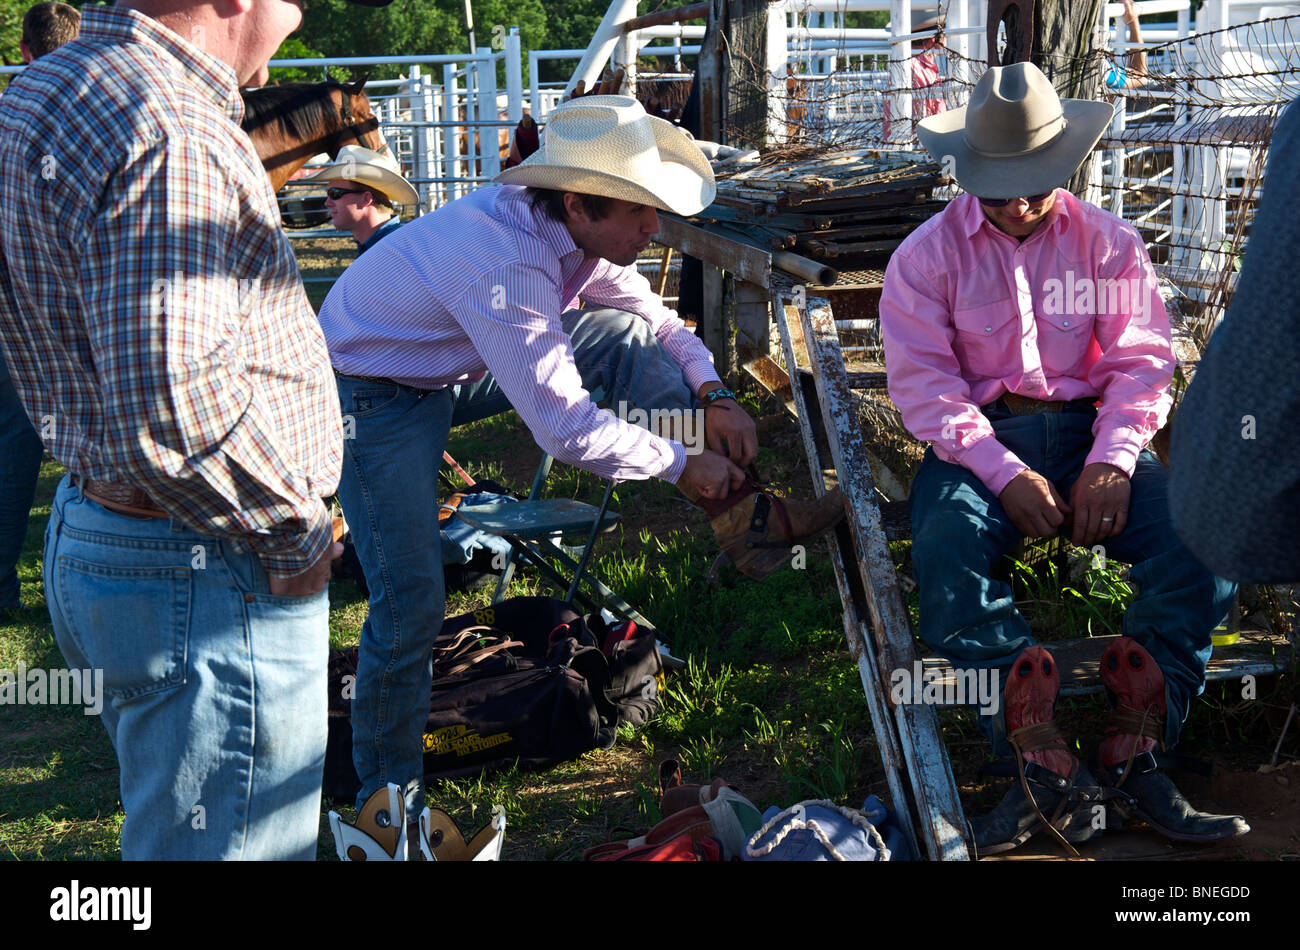 Cowboy members of  PRCA  rodeo event in Bridgeport, Texas, USA - Stock Image